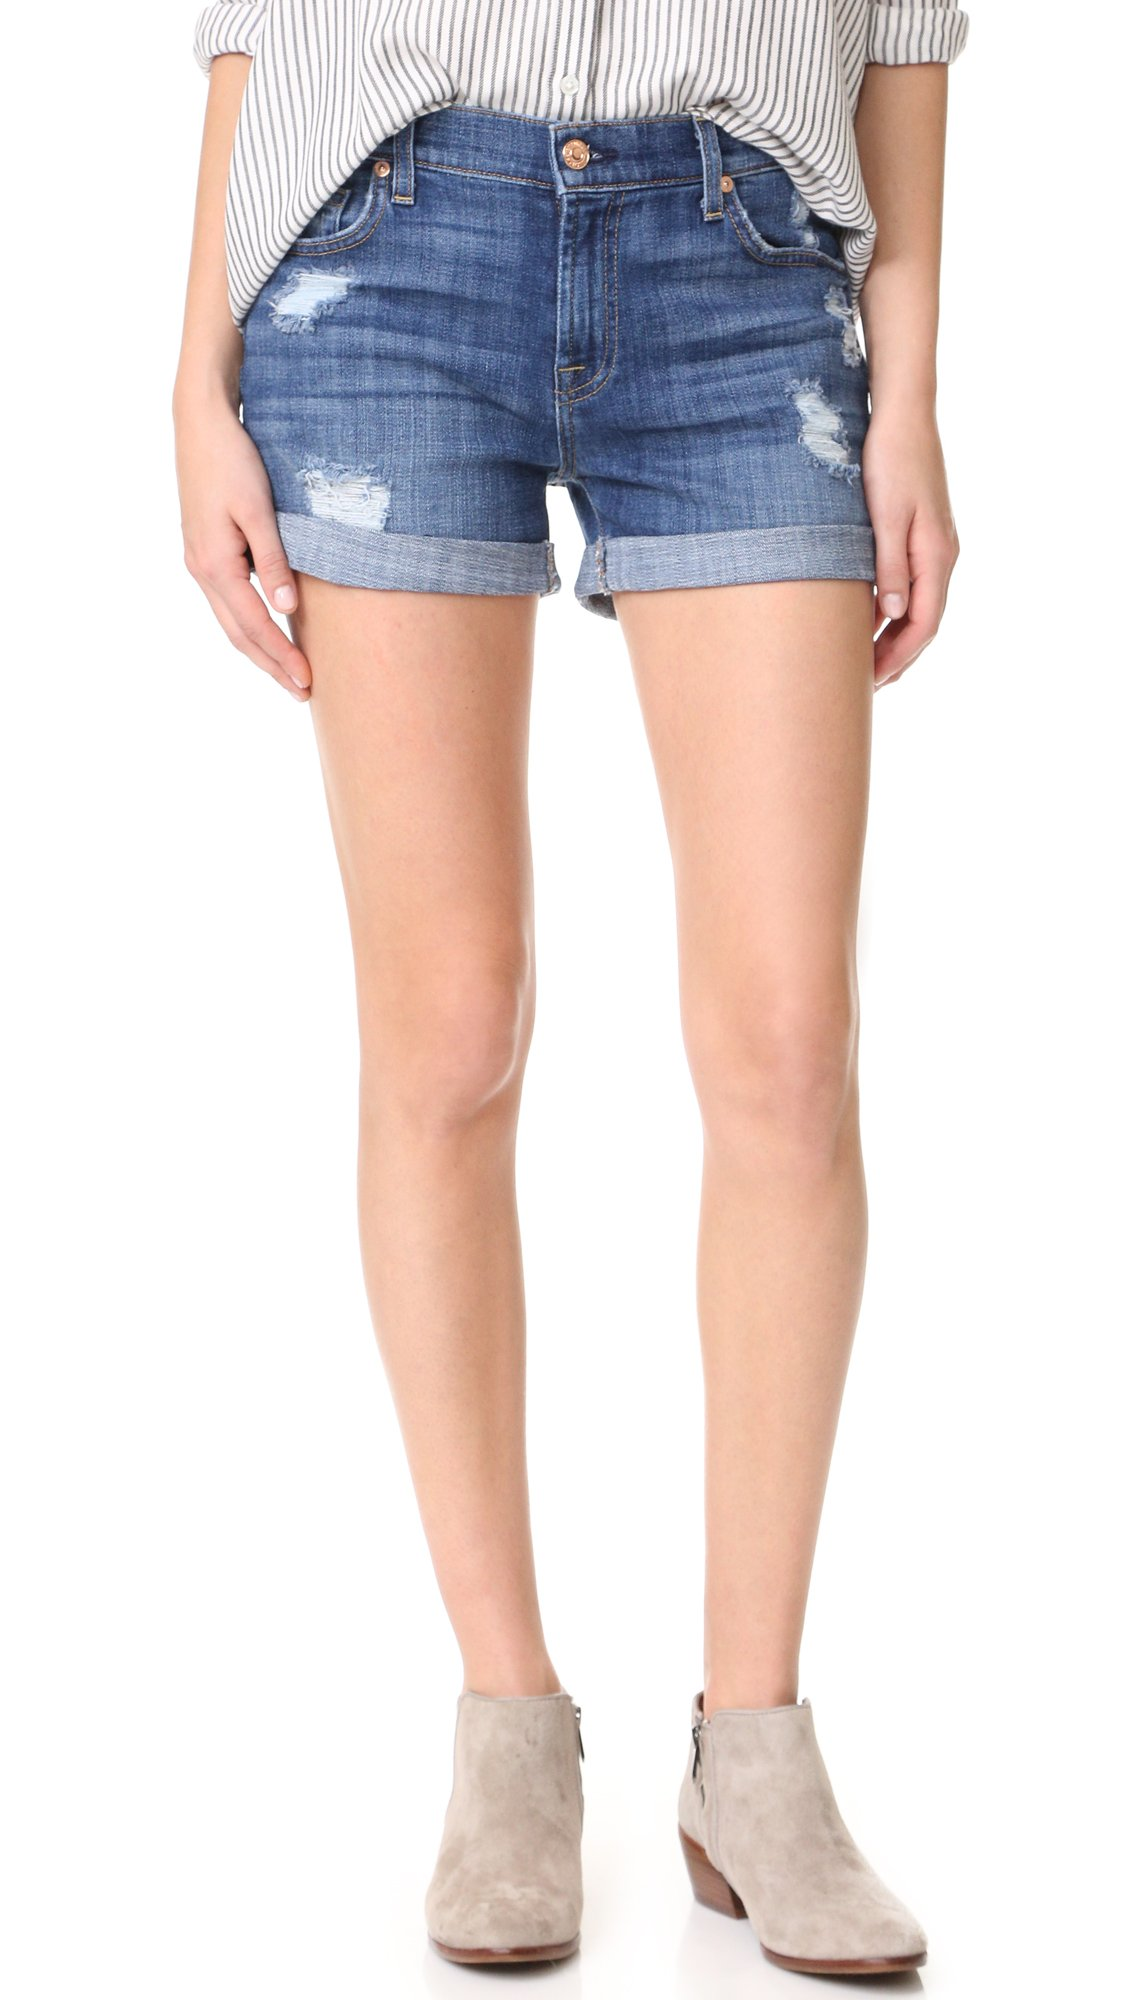 7 For All Mankind Women's Roll Shorts, Barri, 30